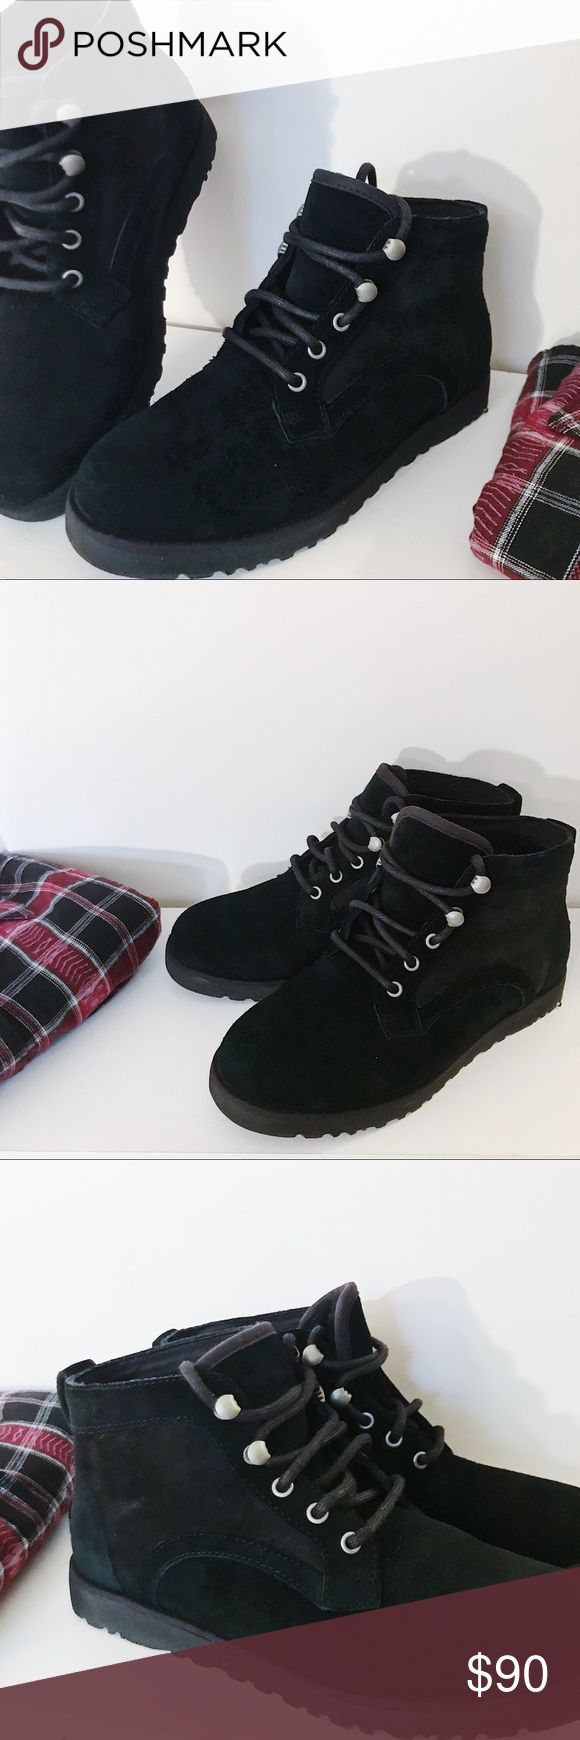 UGG Bethany Black Chukka Boot UGG Bethany slim  Black Chukka Boot Water resistant, real suede and Sherpa lining  Very comfy! Worn once and in perfect condition! UGG Shoes Ankle Boots & Booties